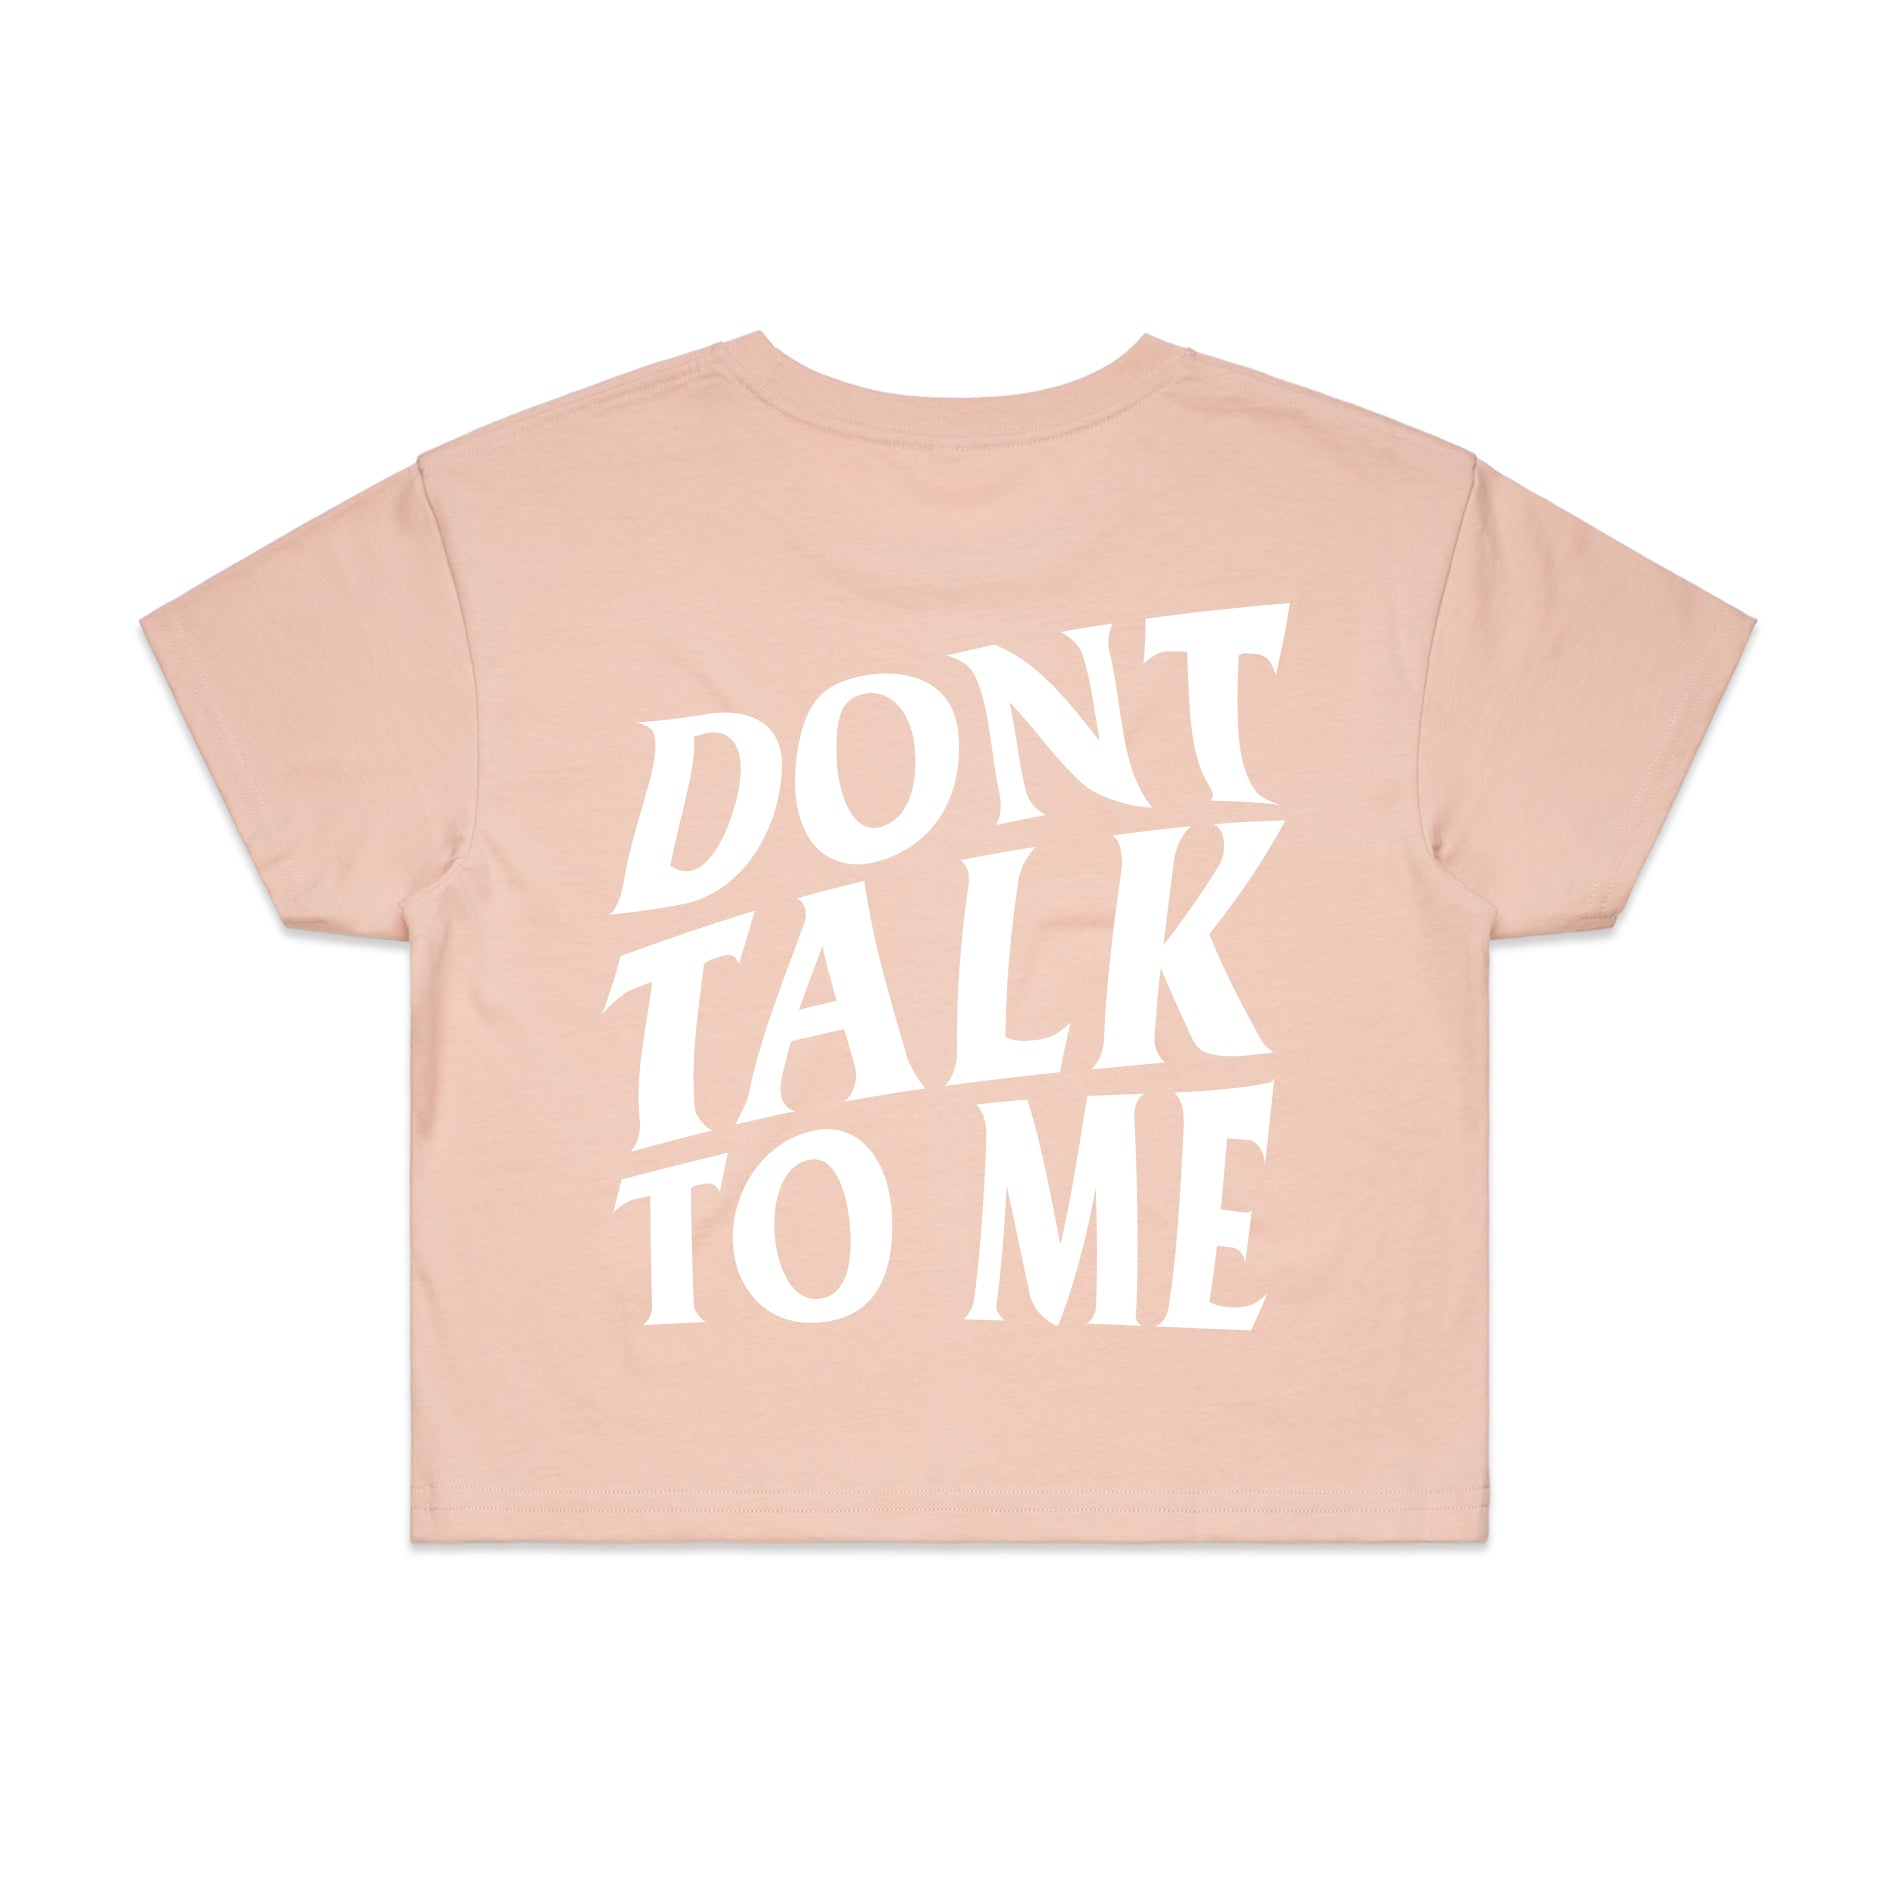 [WOMEN] Don't Talk To Me - Pale Pink Crop Tee